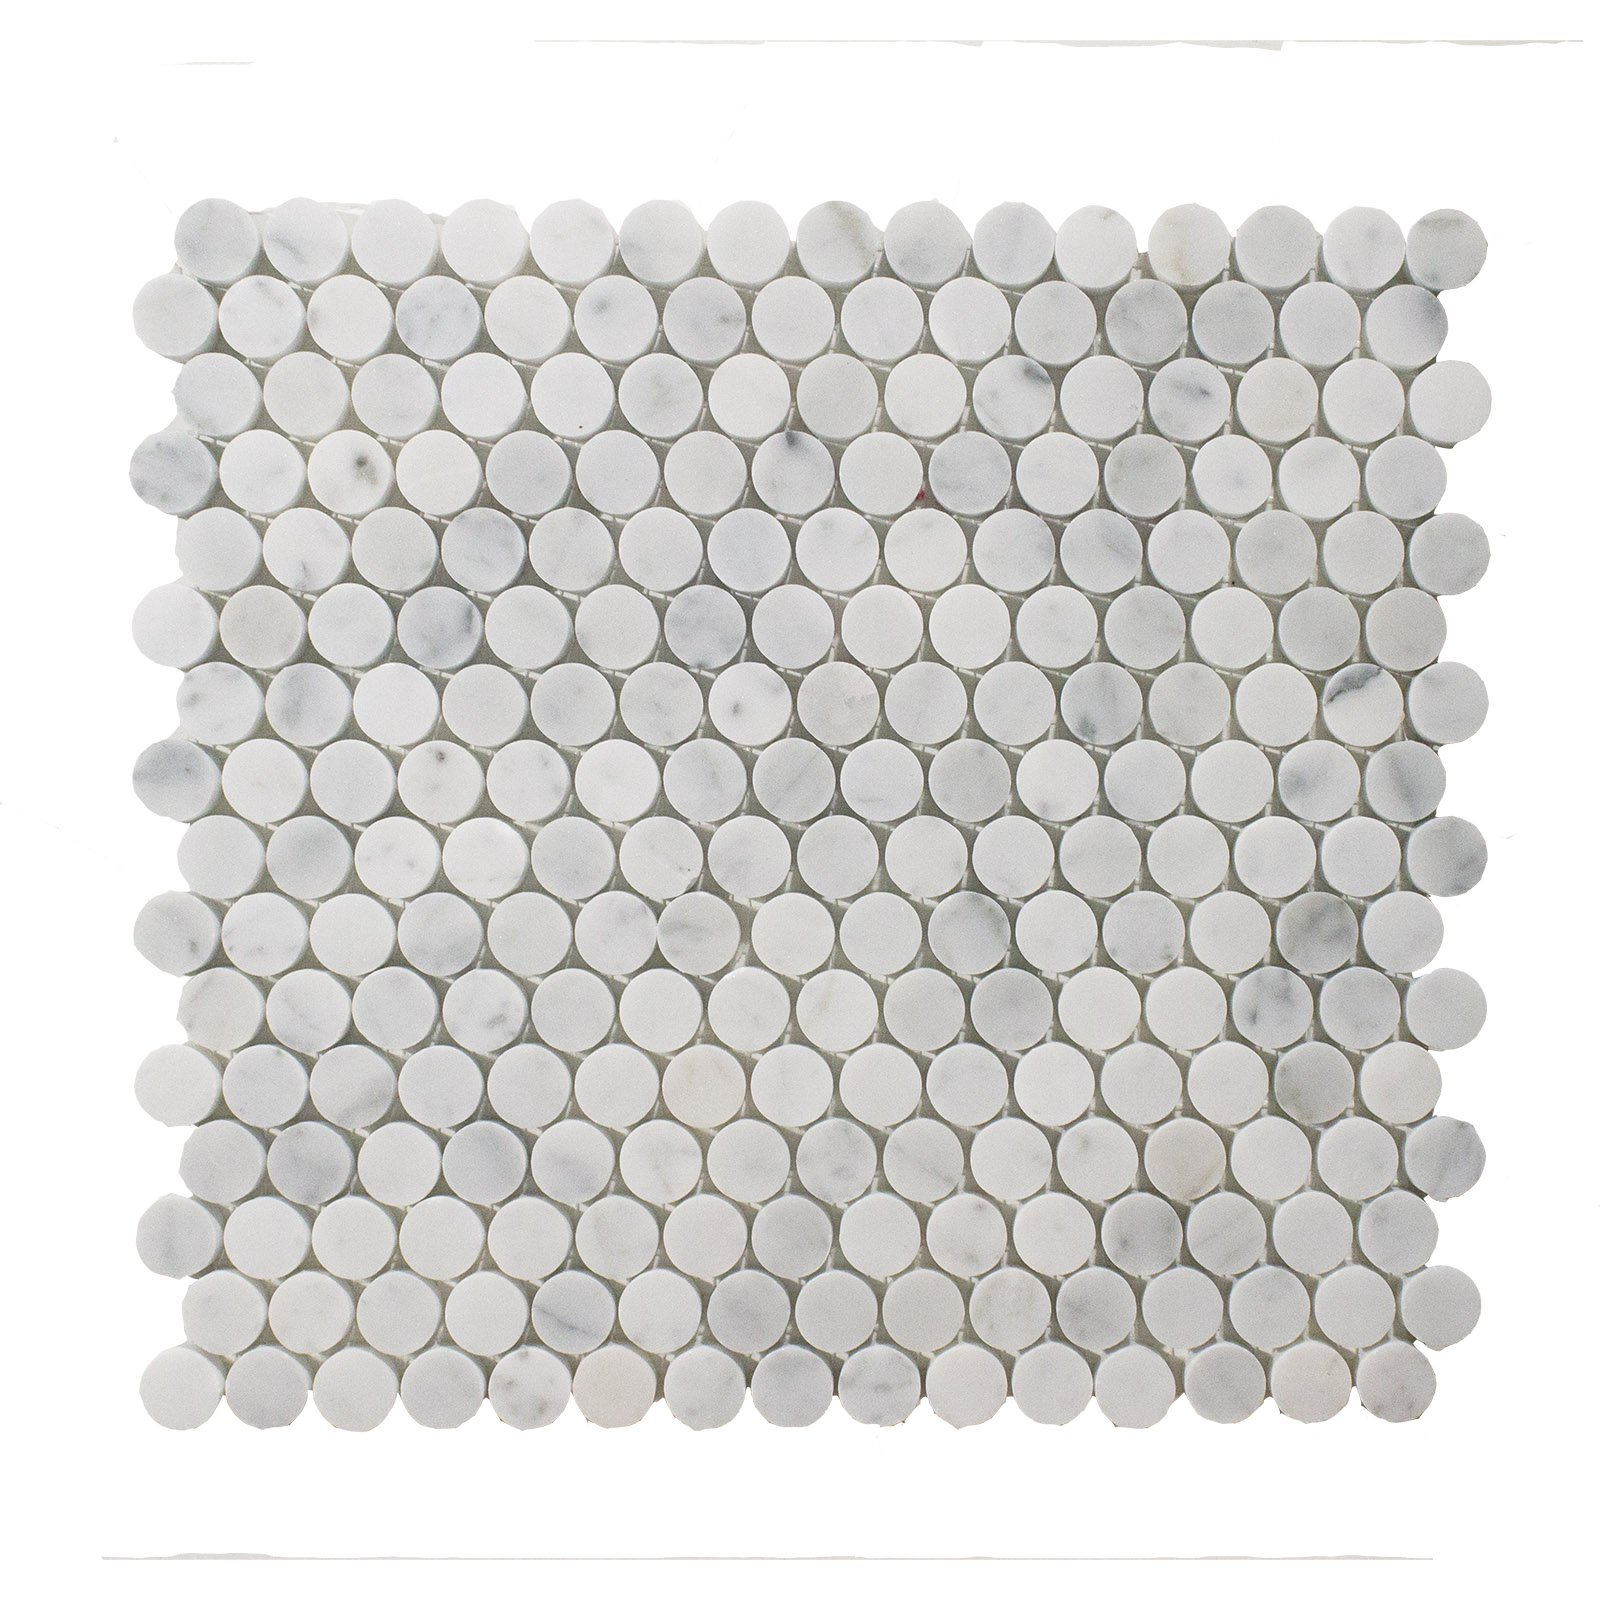 Carrara White Marble Mosaic Tile, CWMM34ROU-H, 3/4'' Penny Round, 12''X11-1/2''X3/8'', Honed (Box of 5 Sheets)